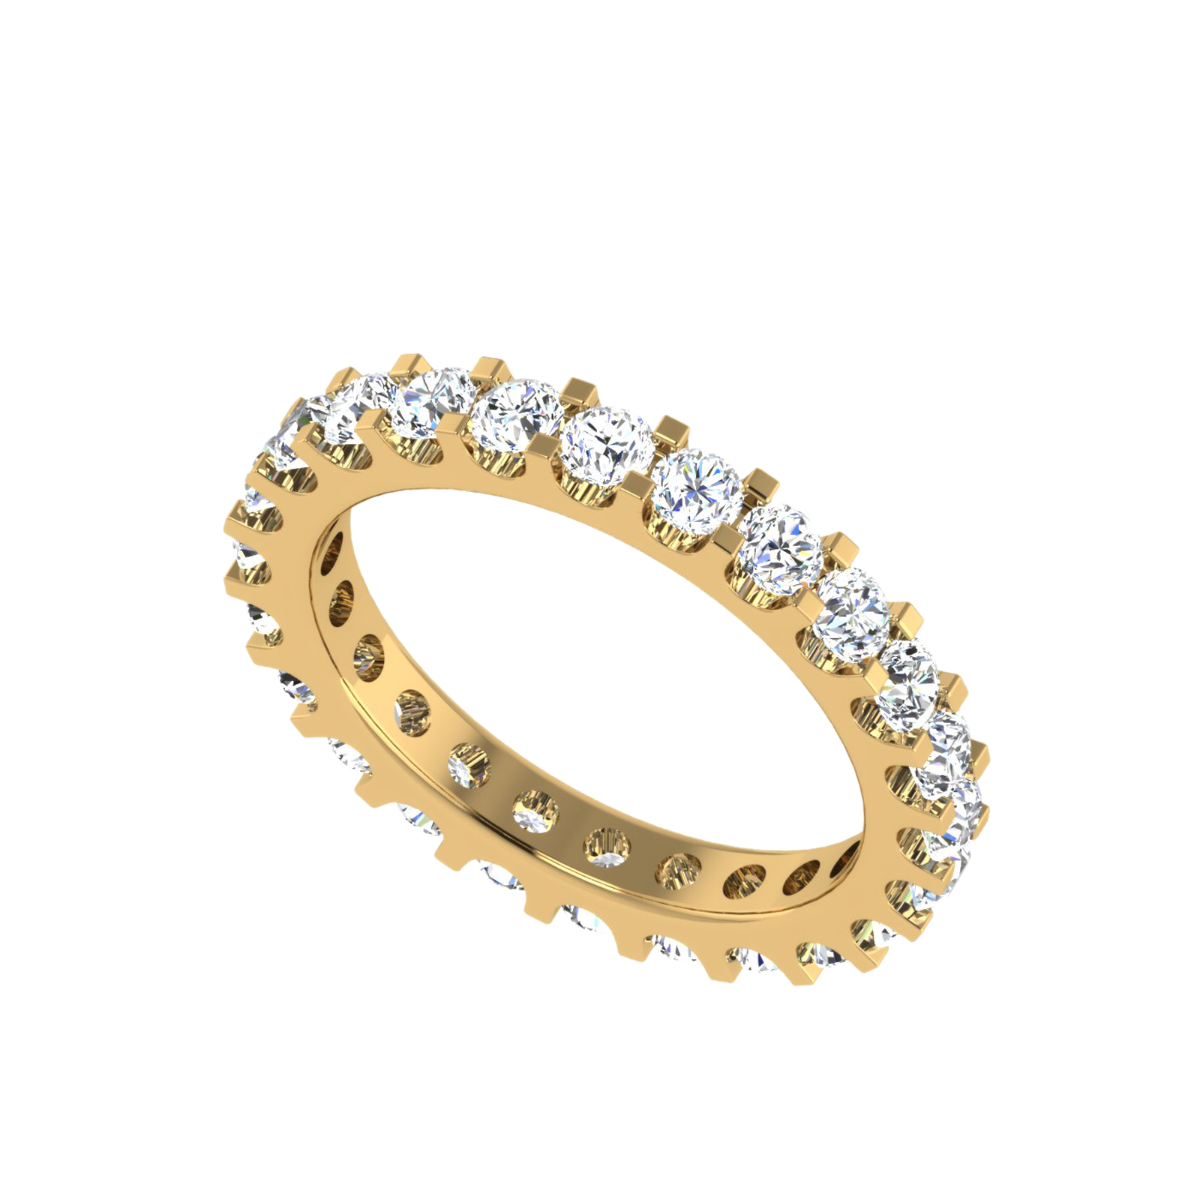 The Lunar Eternity Diamond Band Ring